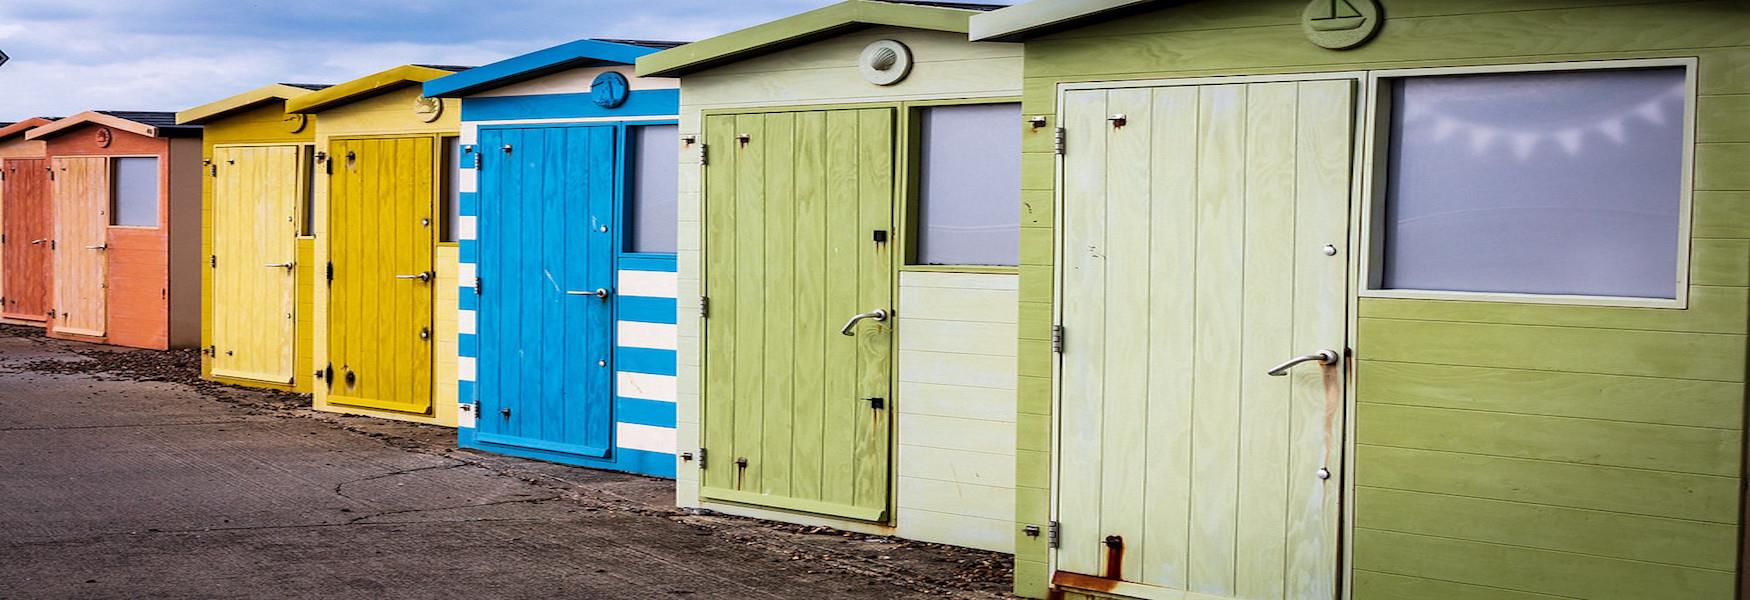 Beach Huts at Seaford Beach - Nigel French